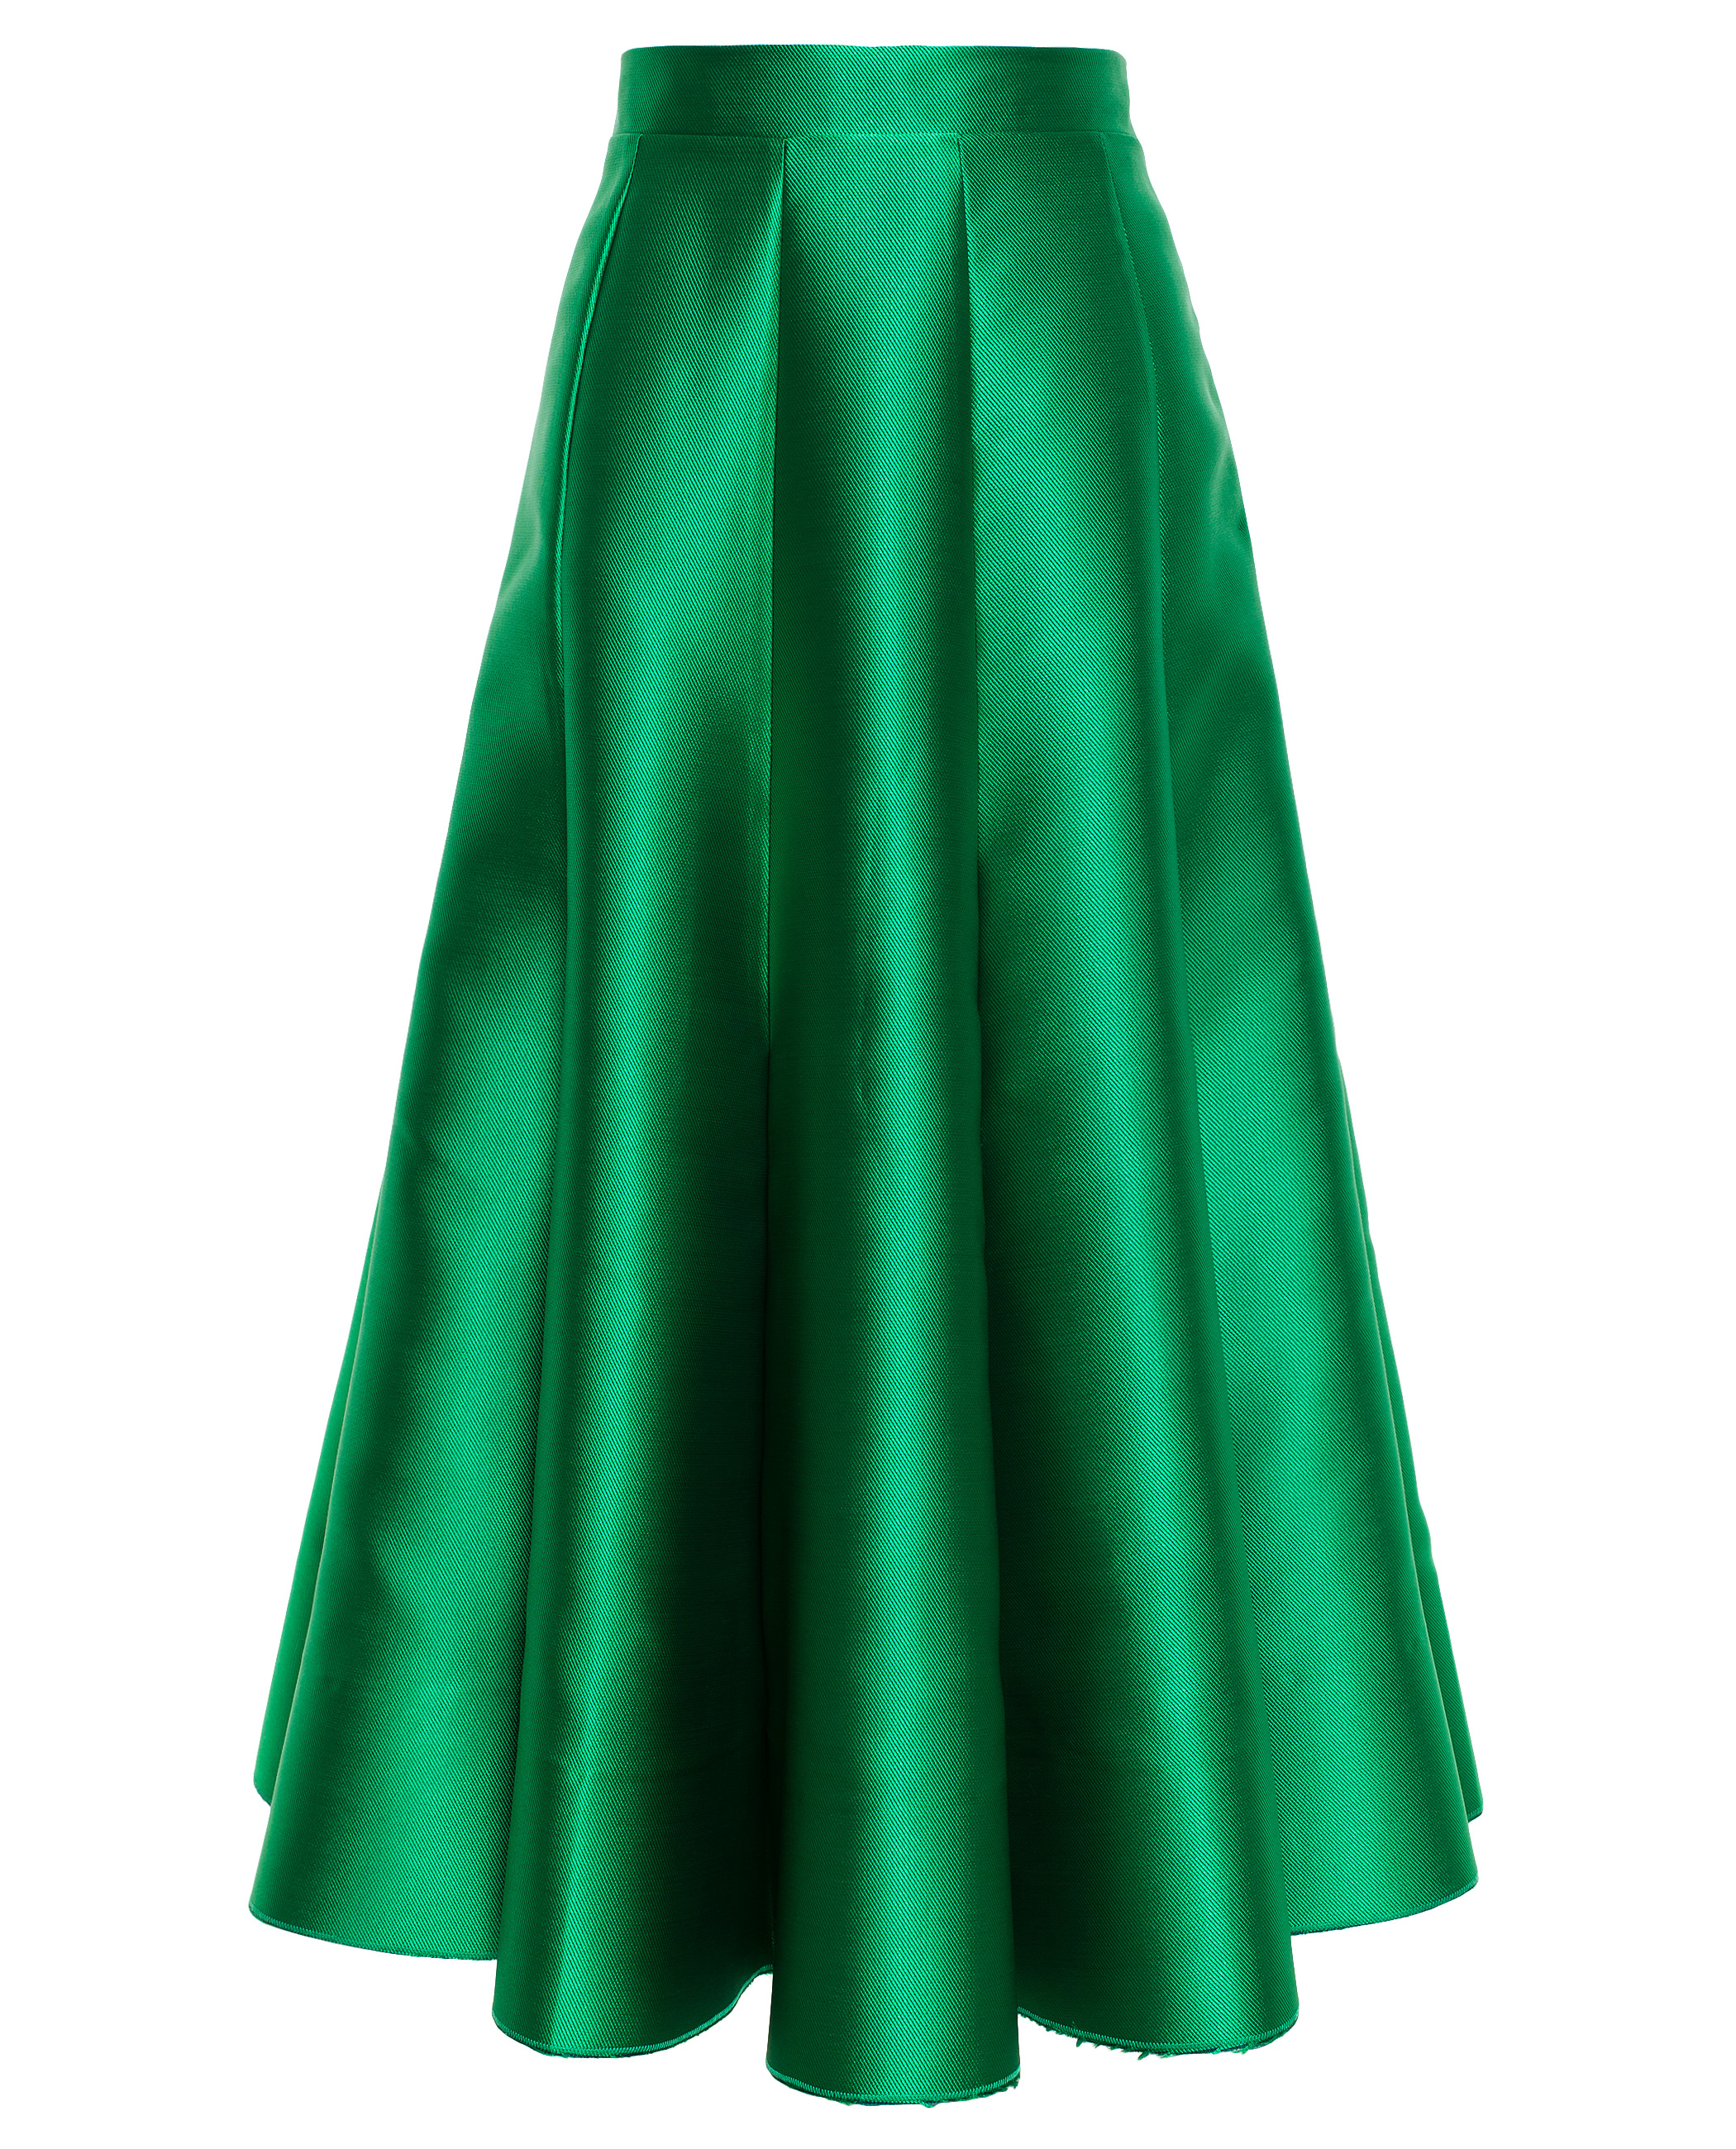 Natasha zinko Satin Midi Skirt in Green